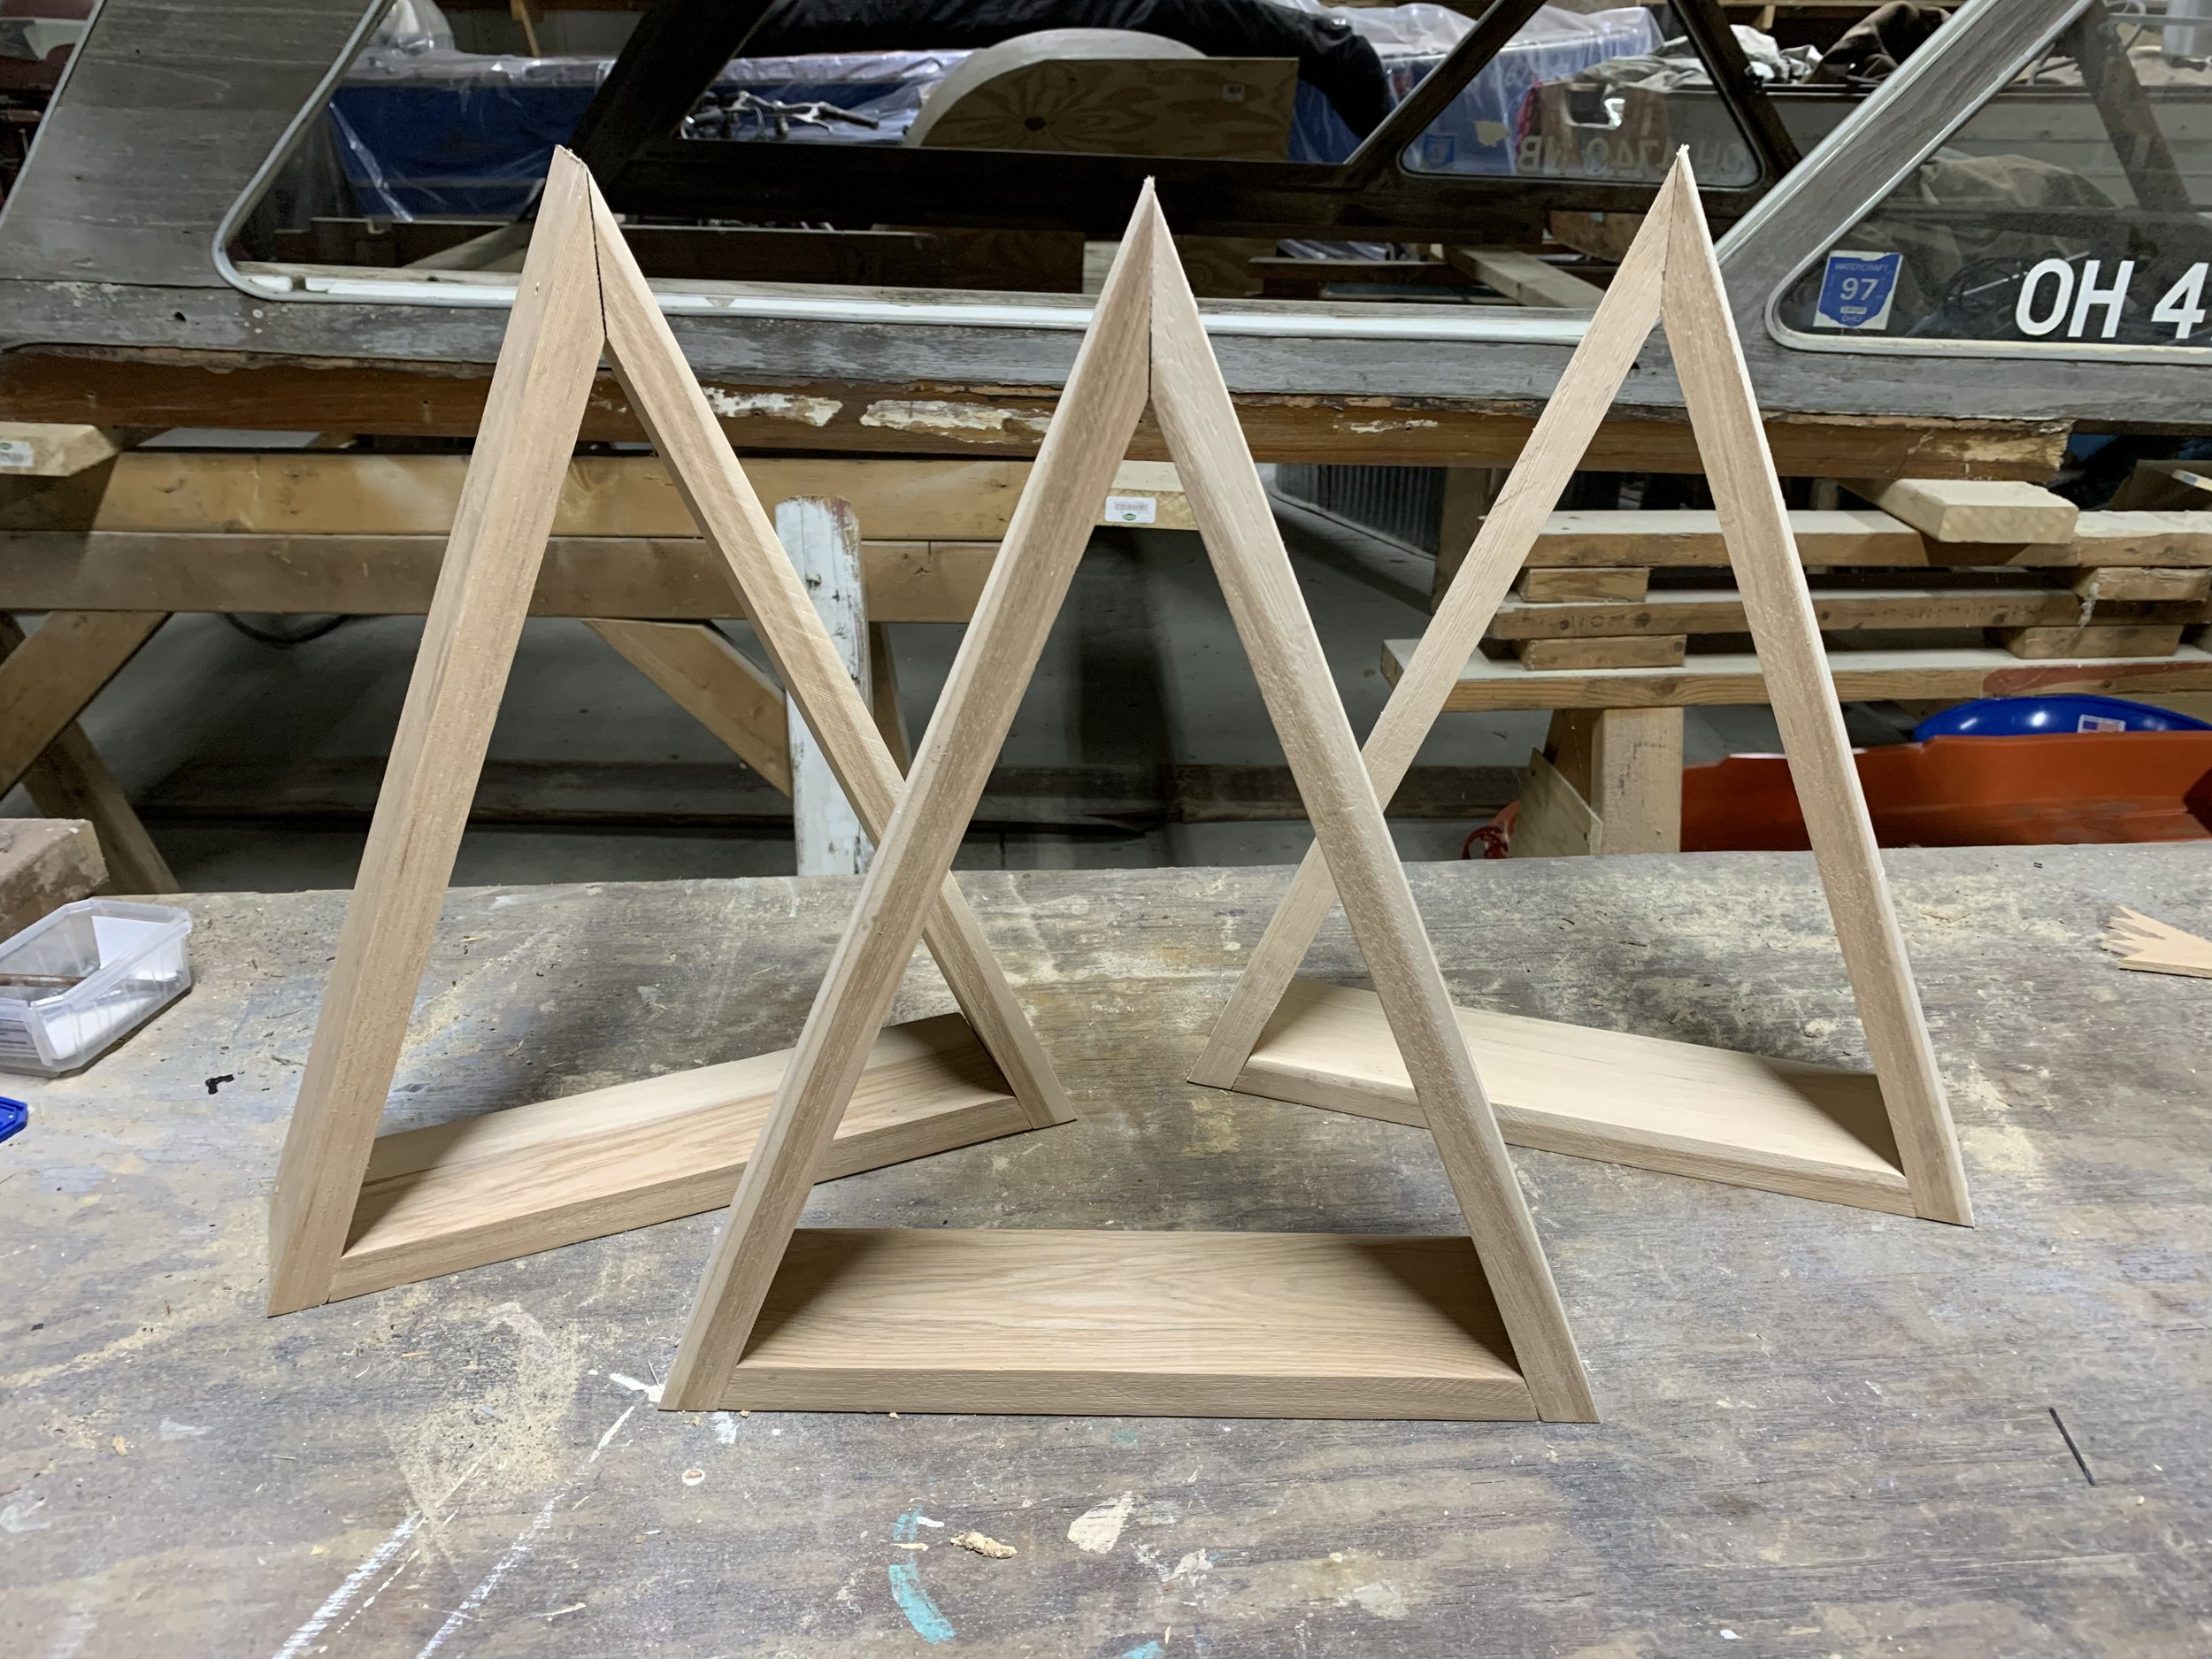 Triangle shelve assembled - ready for finishing.